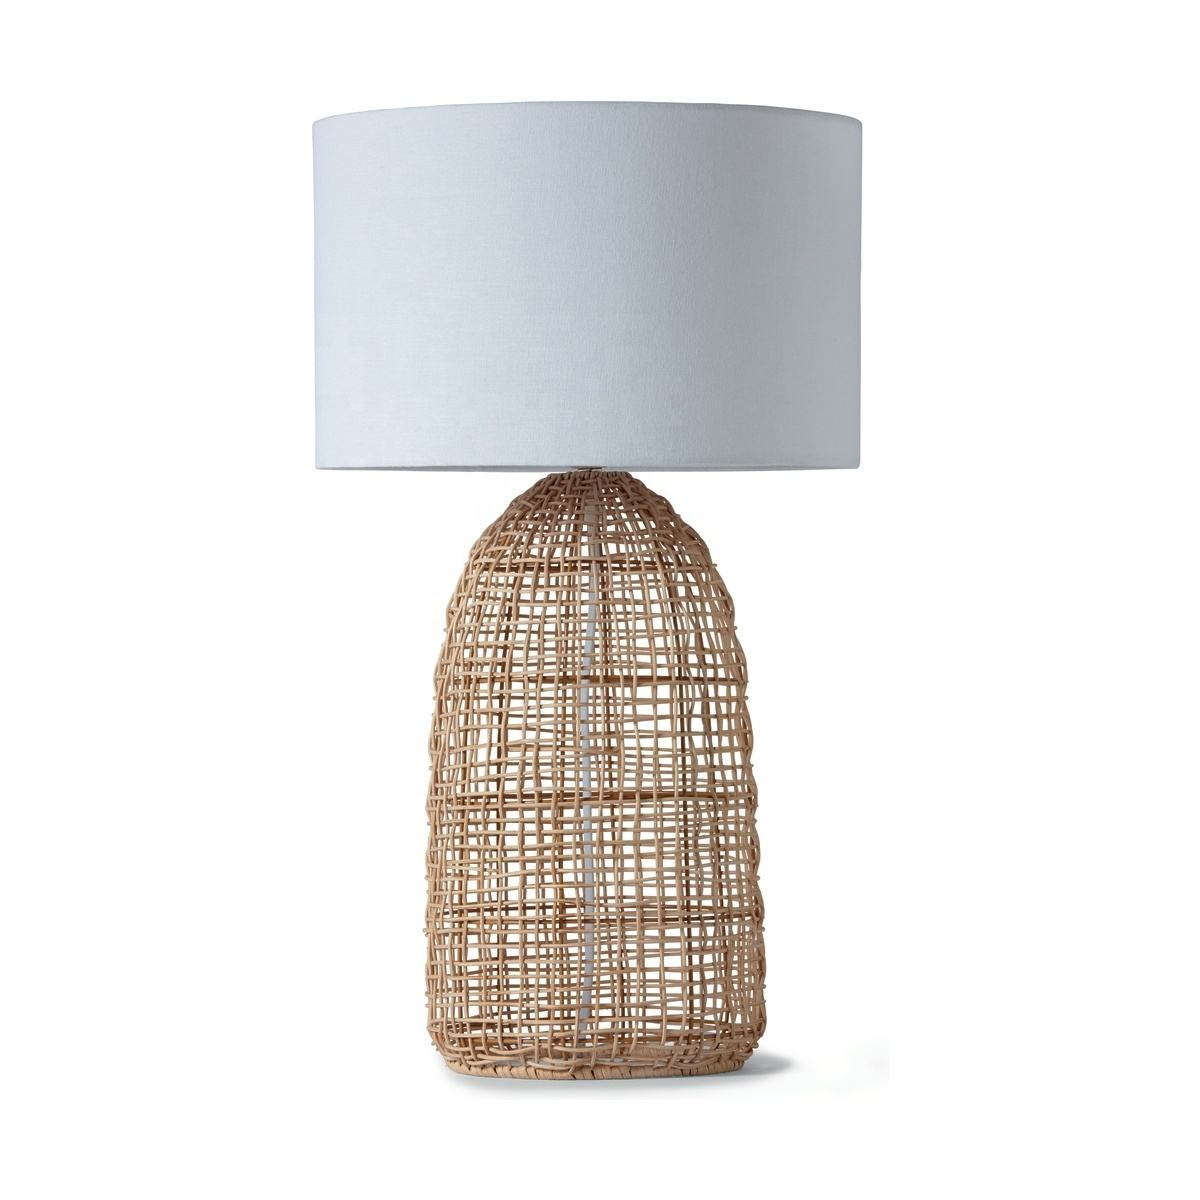 JLT-R12 Natural Rattan Bamboo Base Table Lamp For Restaurant Coffee Shop